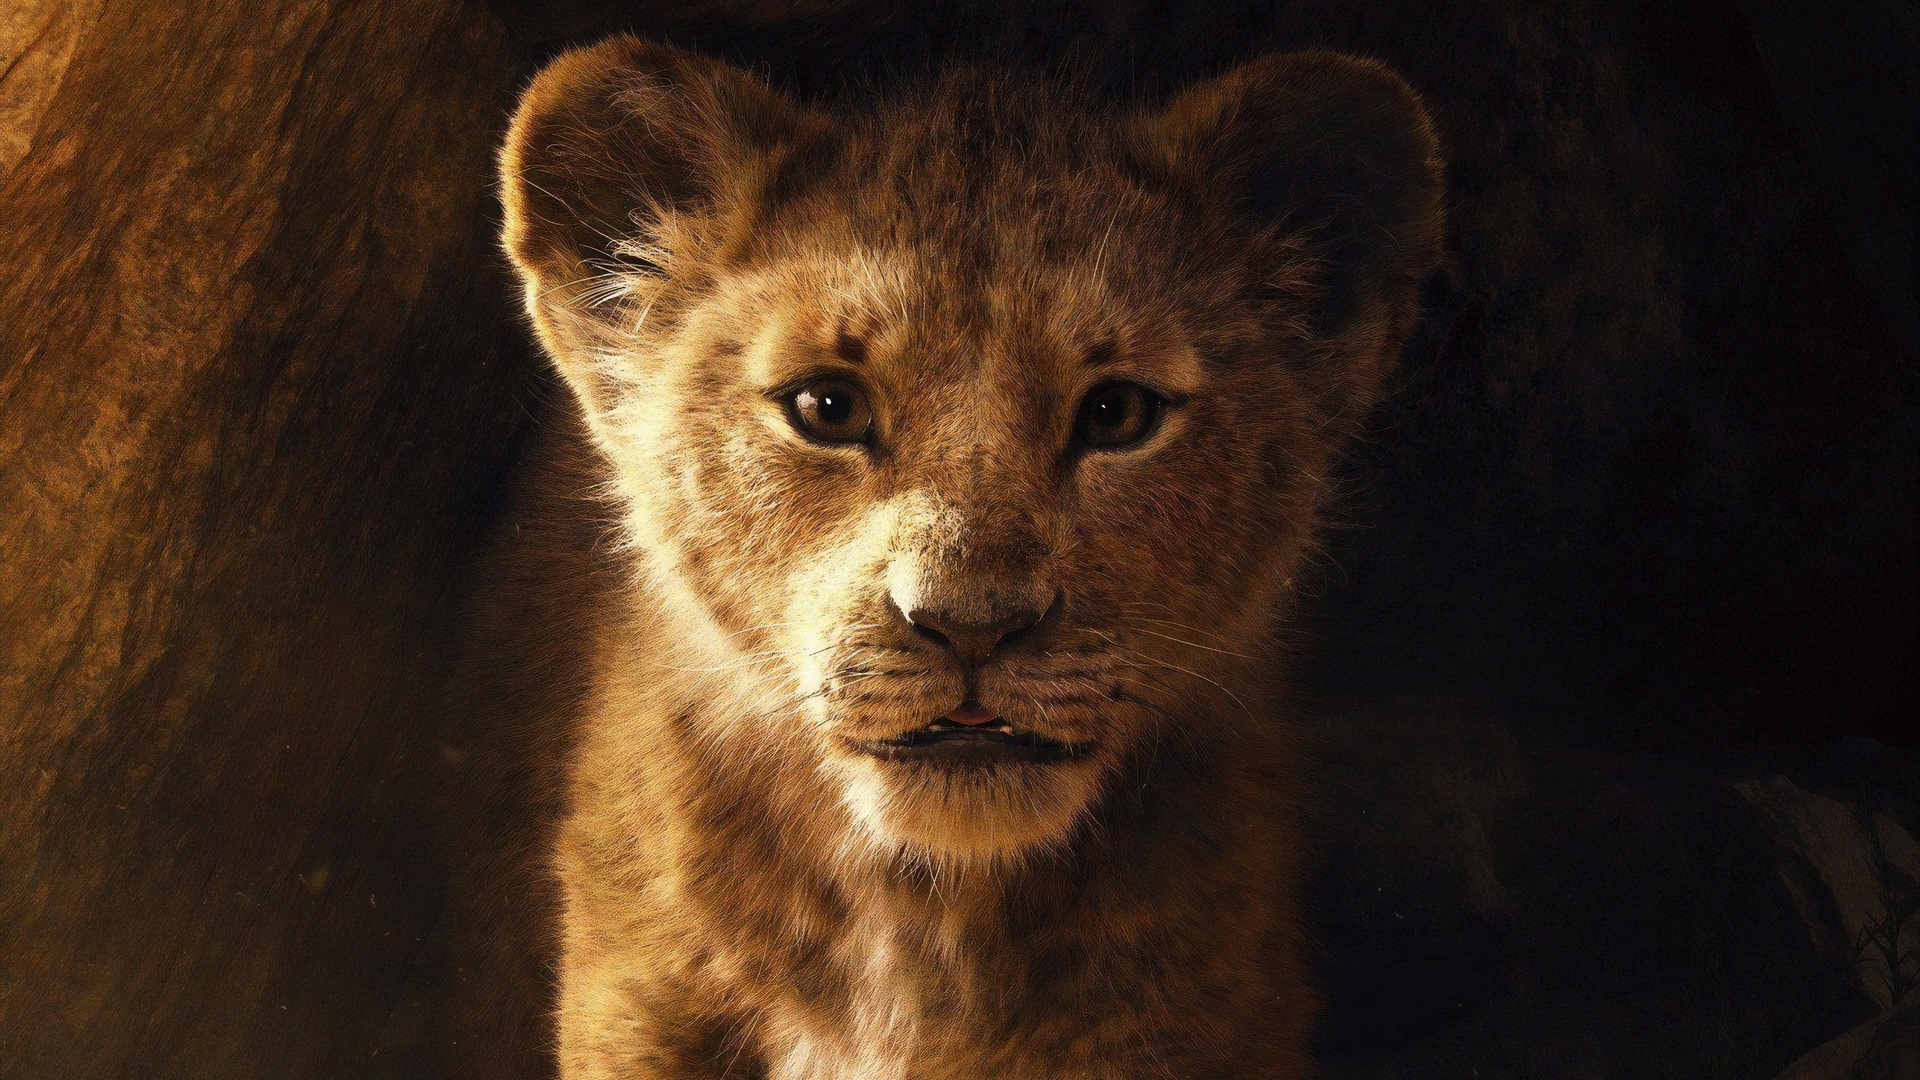 1. The Lion King